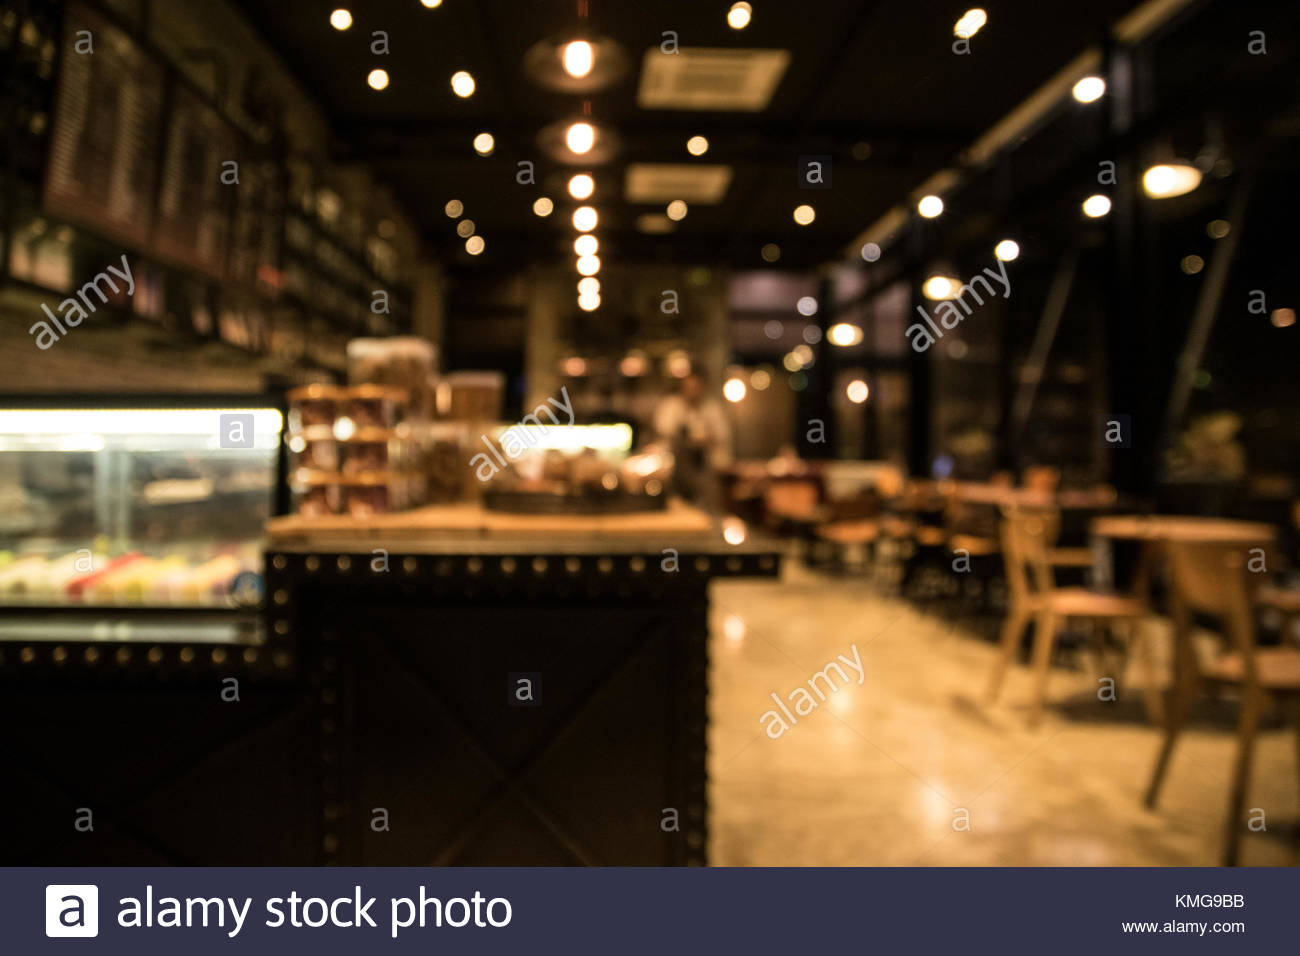 The night cafe blurry image on boken background Stock Photo   Alamy 1300x956